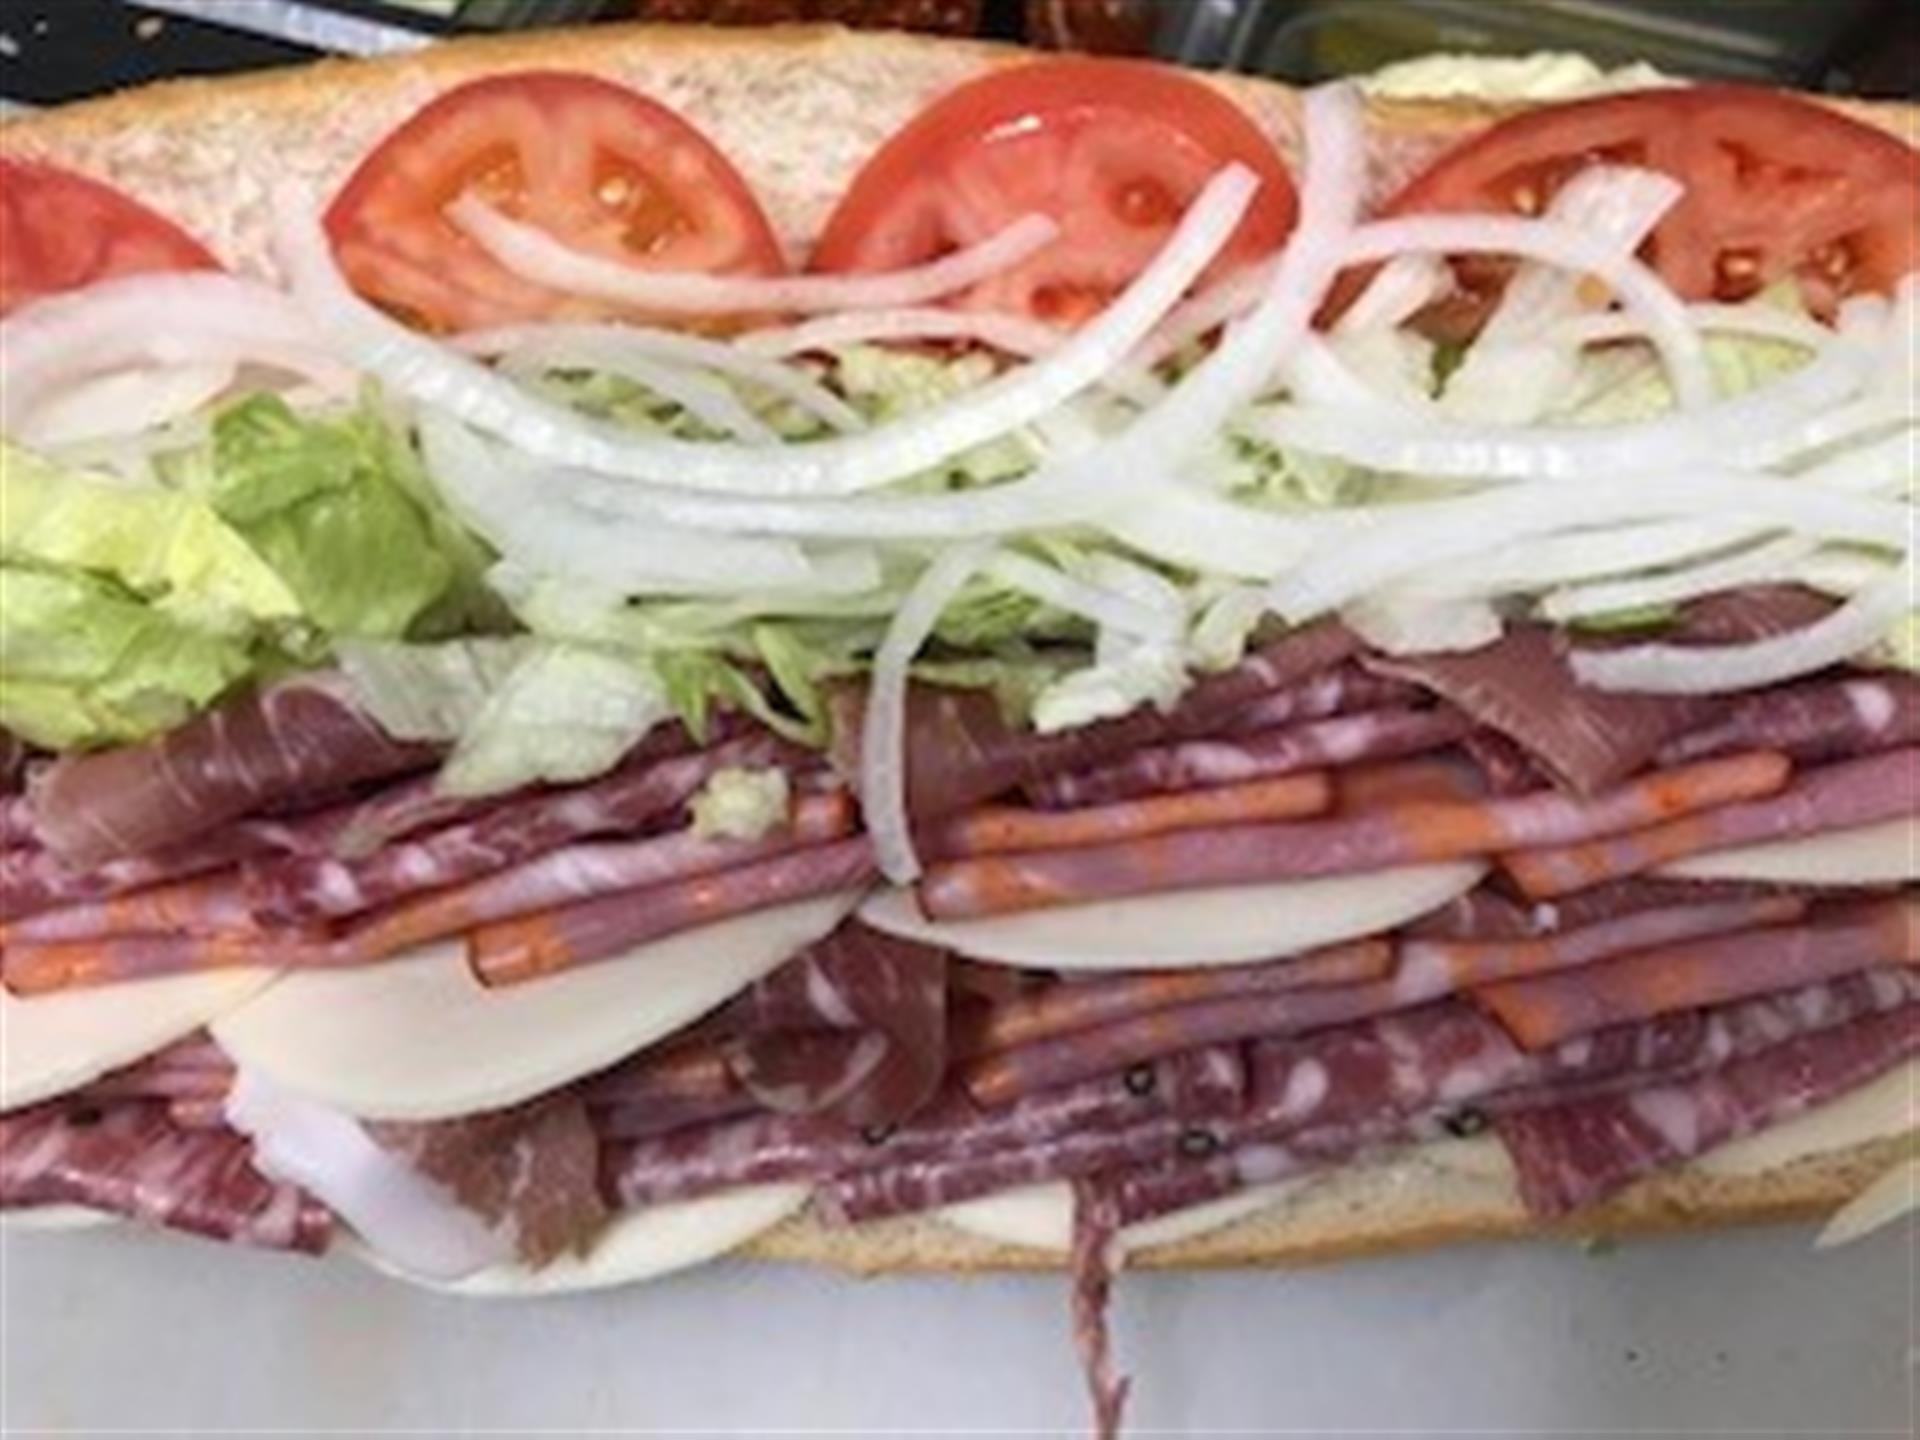 Italian sub sandwich up close with lettuce, tomato and onion.